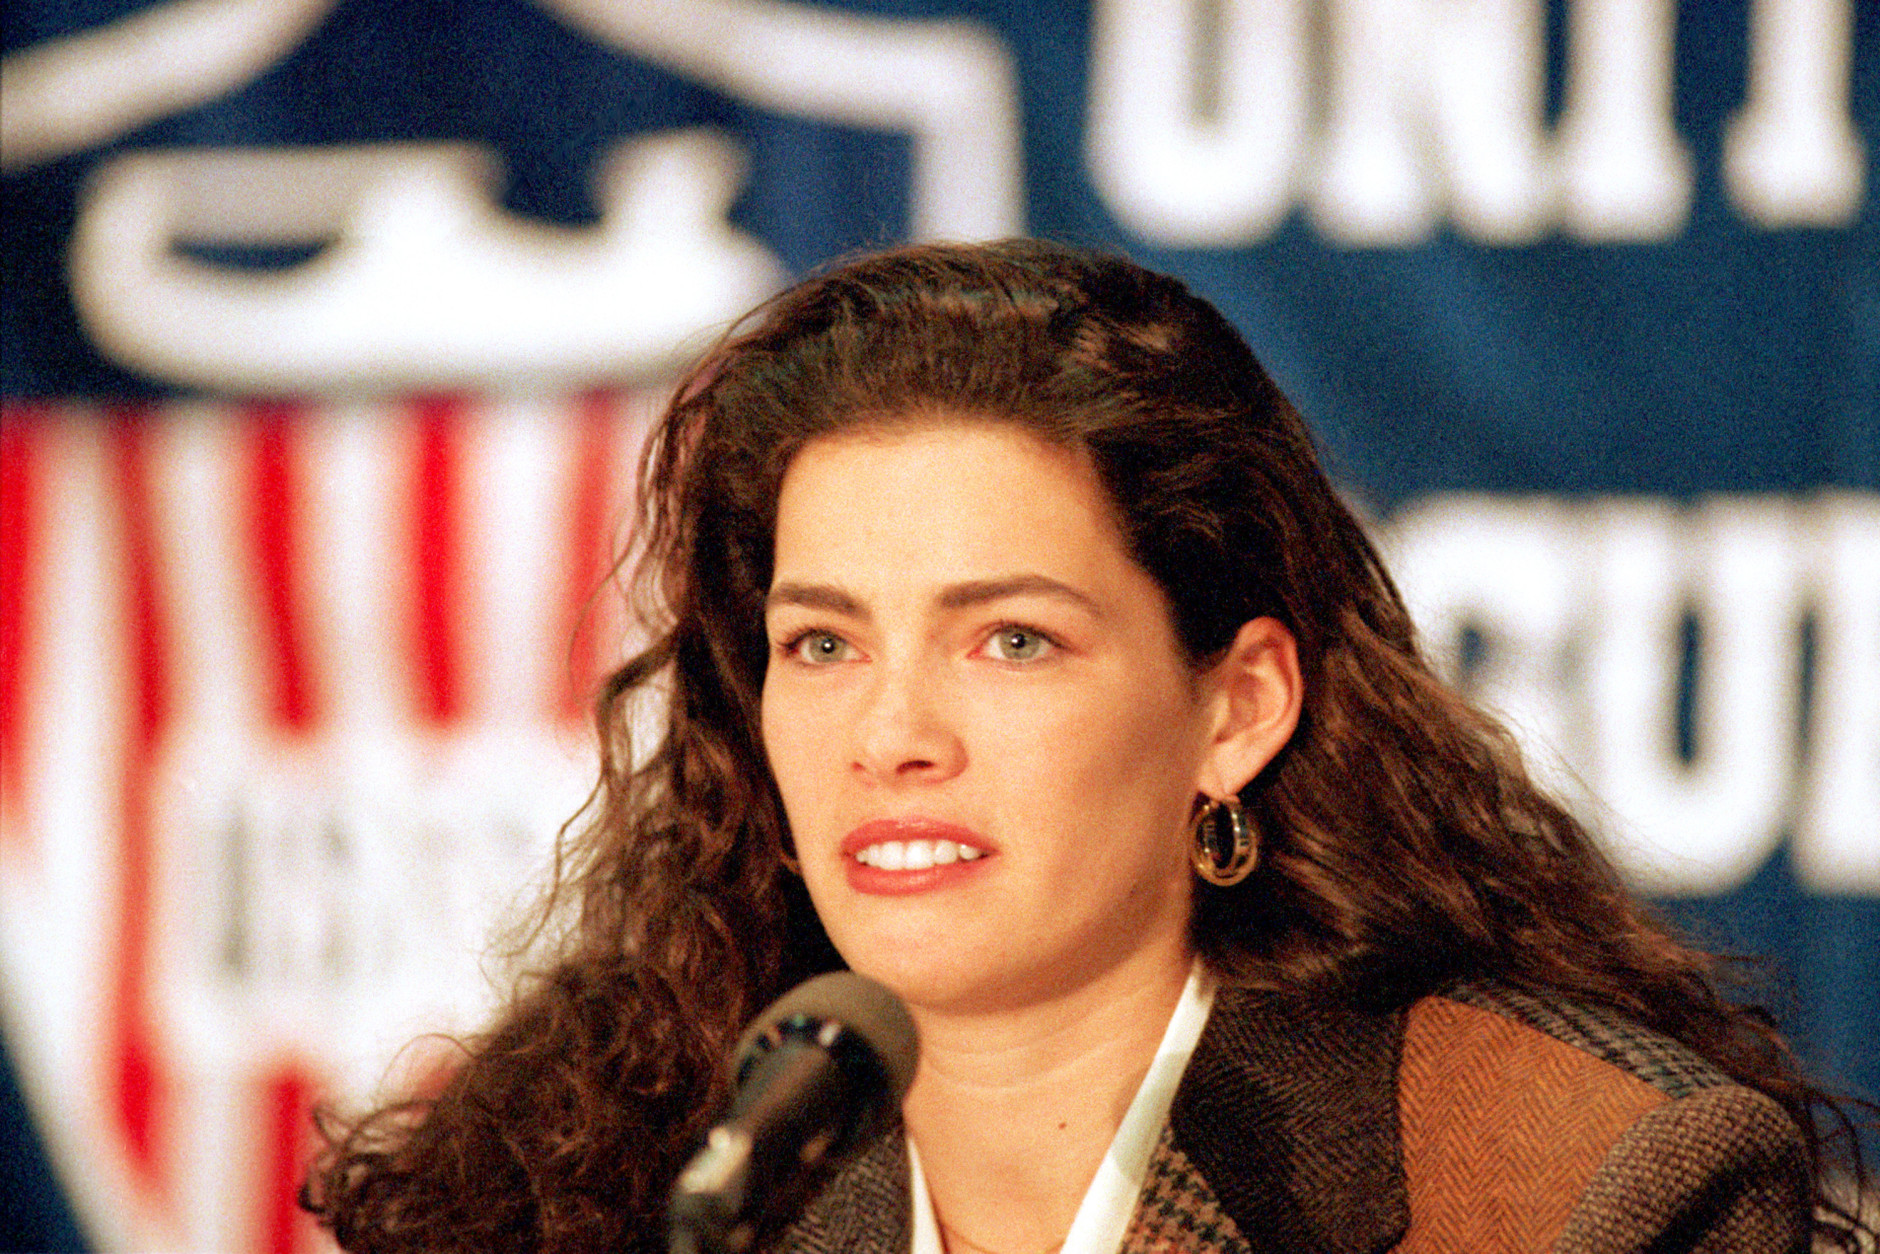 Nancy Kerrigan, of Stoneham, Mass., speaks during a news conference at the U.S. Figure Skating Championships in Detroit, Mich., on Friday, Jan. 7, 1994.  Kerrigan was clubbed on her right knee with a metal baton after a practice session at Cobo Arena on Jan. 6.  (AP Photo/Lennox McLendon)